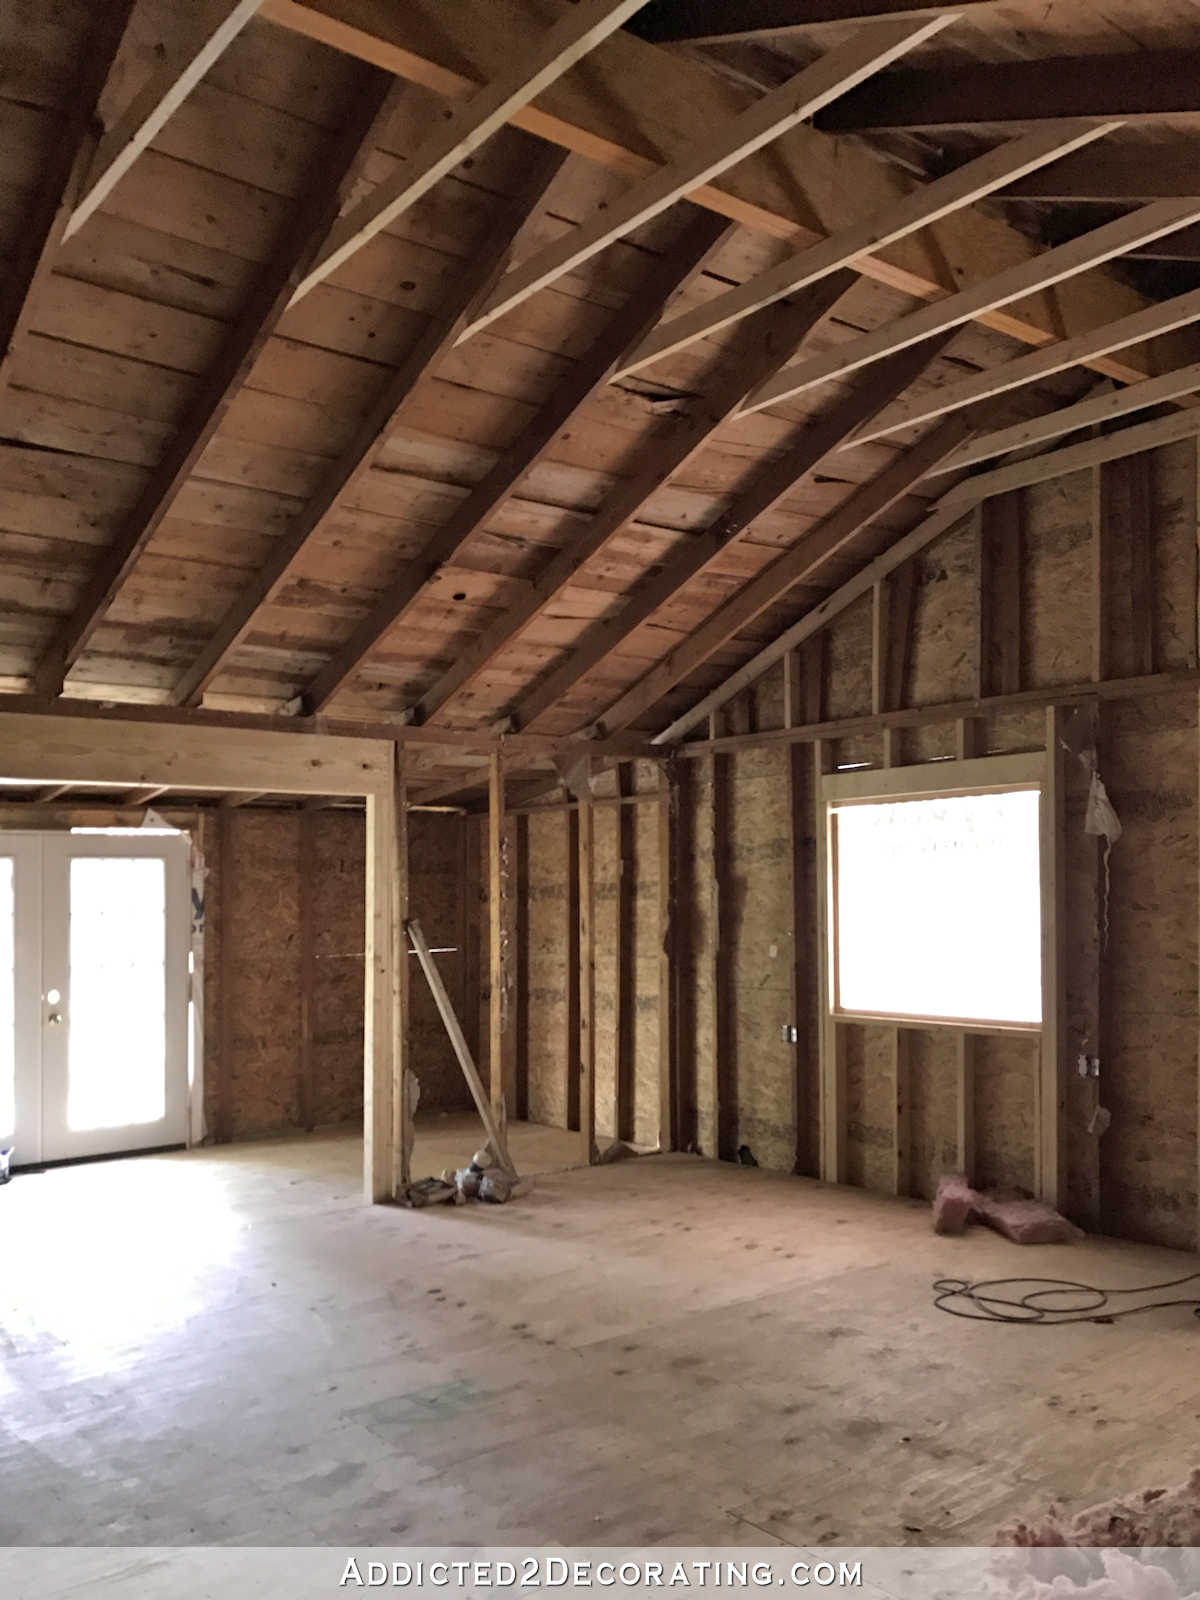 Need Help Decorating My Home